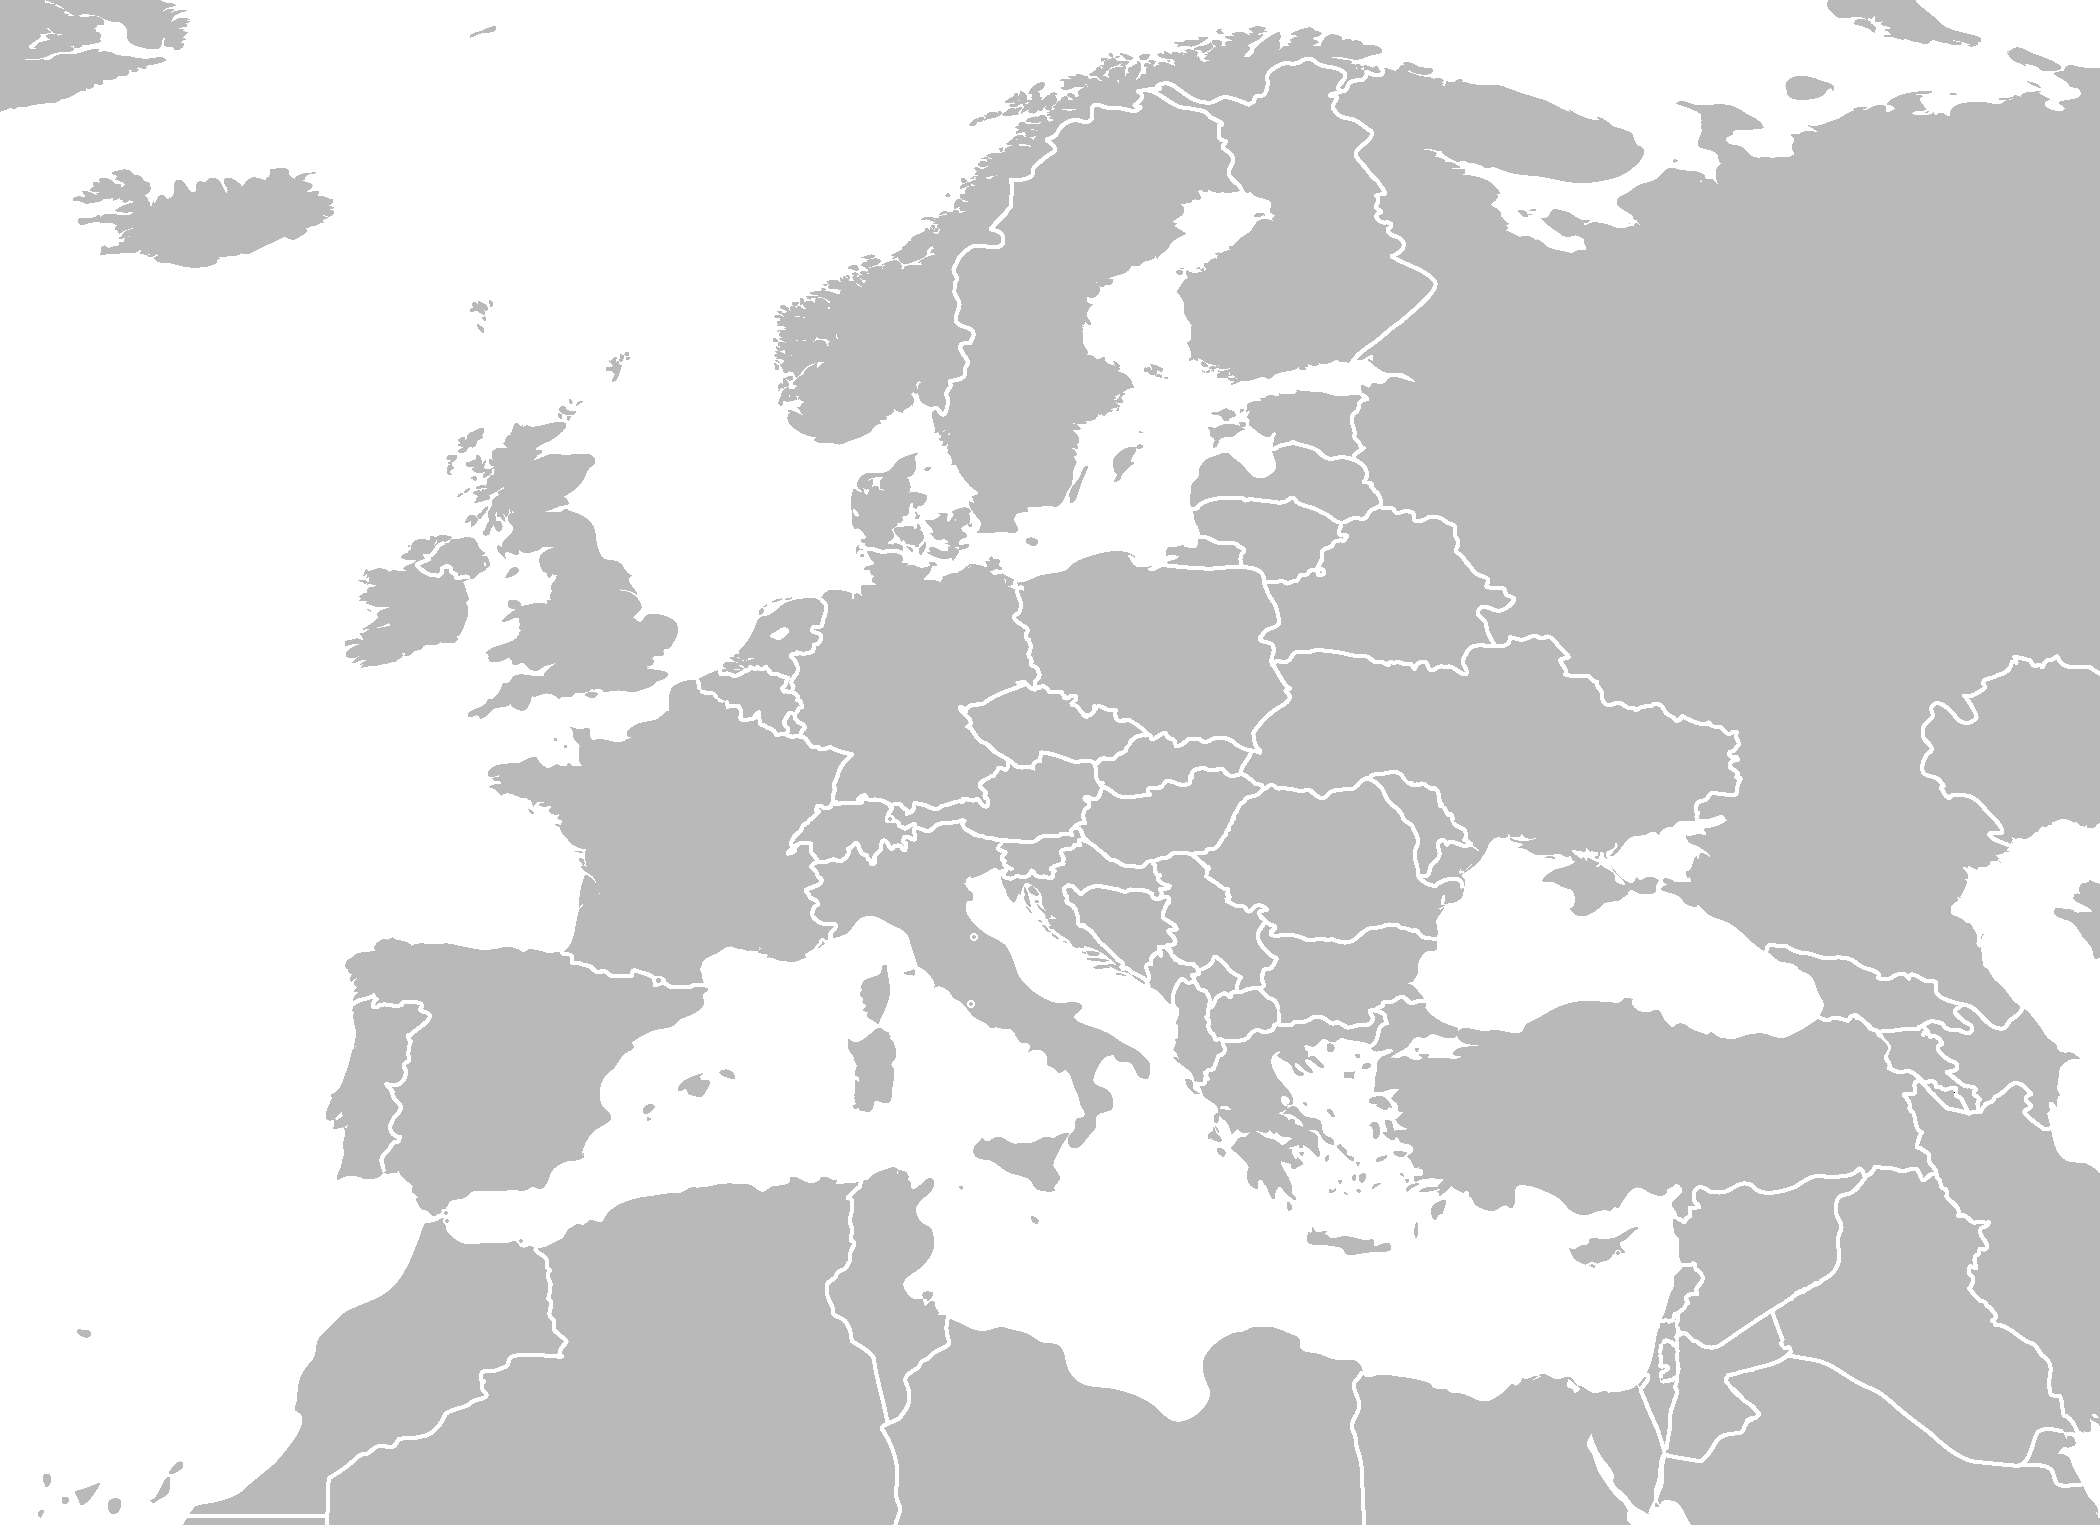 File:BlankMap Europe v4.png   Wikimedia Commons